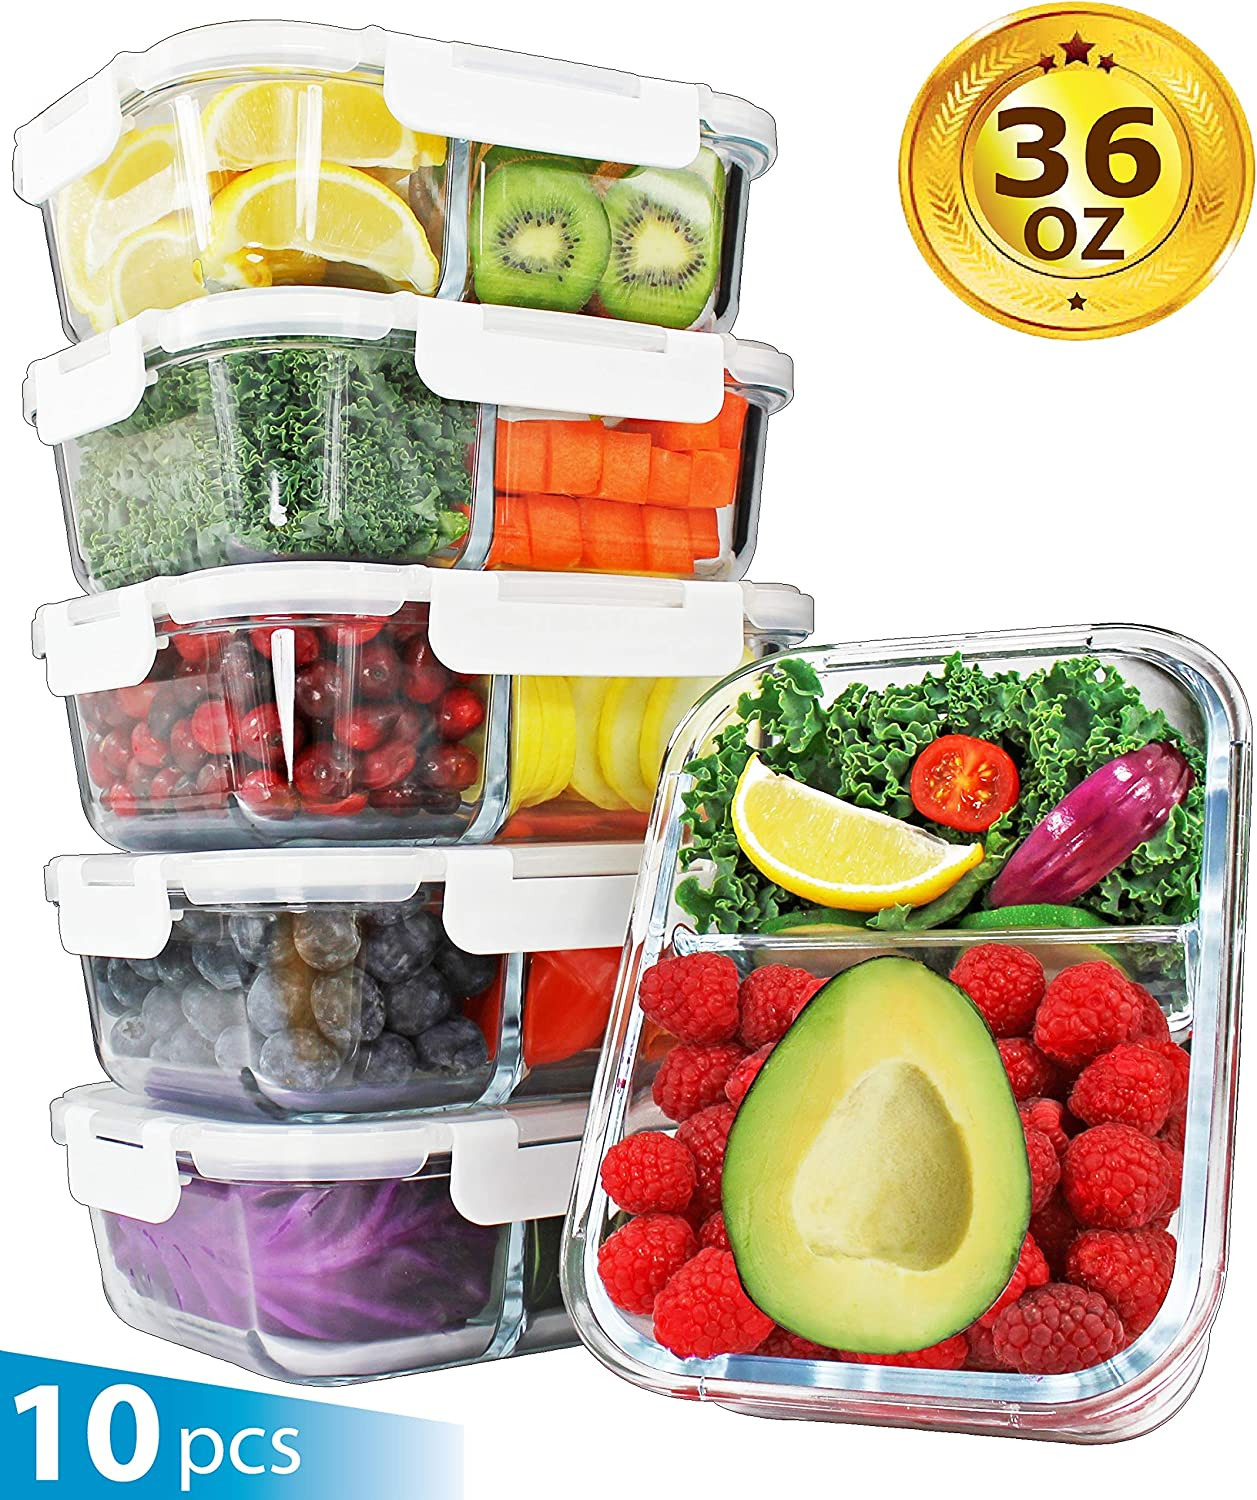 [36oz, 5-Pack Premium] Glass Meal Prep Containers 2 Compartment Set- Food Lunch Storage- Airtight Locking Lids - Portion Control -Microwave, Freezer, Oven & Dishwasher Safe (4.5 Cups)